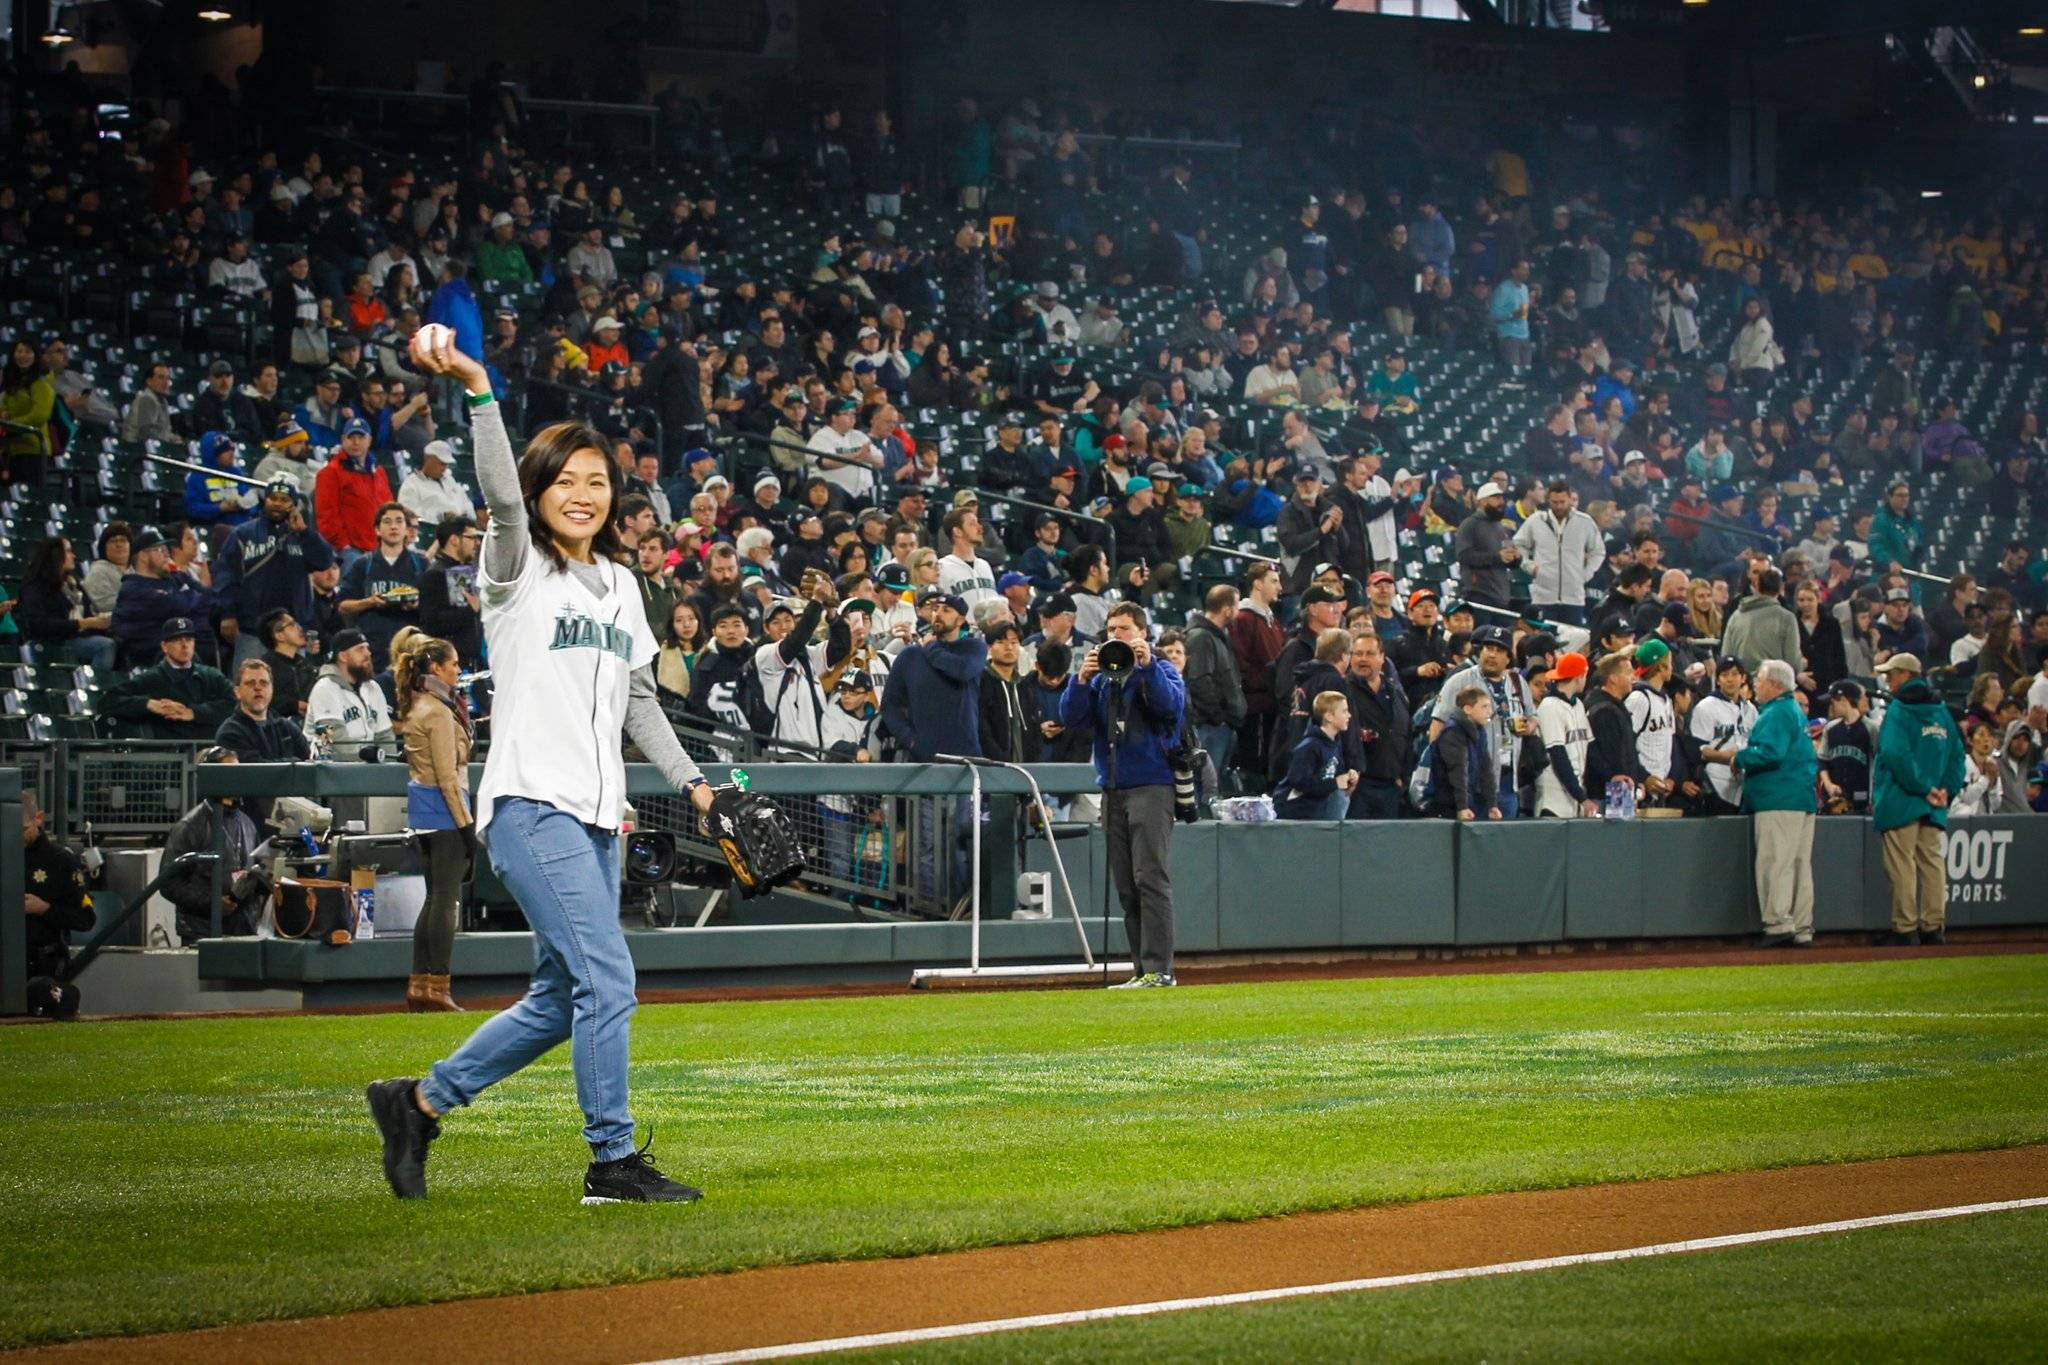 VIDEO: Reign striker Kawasumi throws first pitch at Mariners game